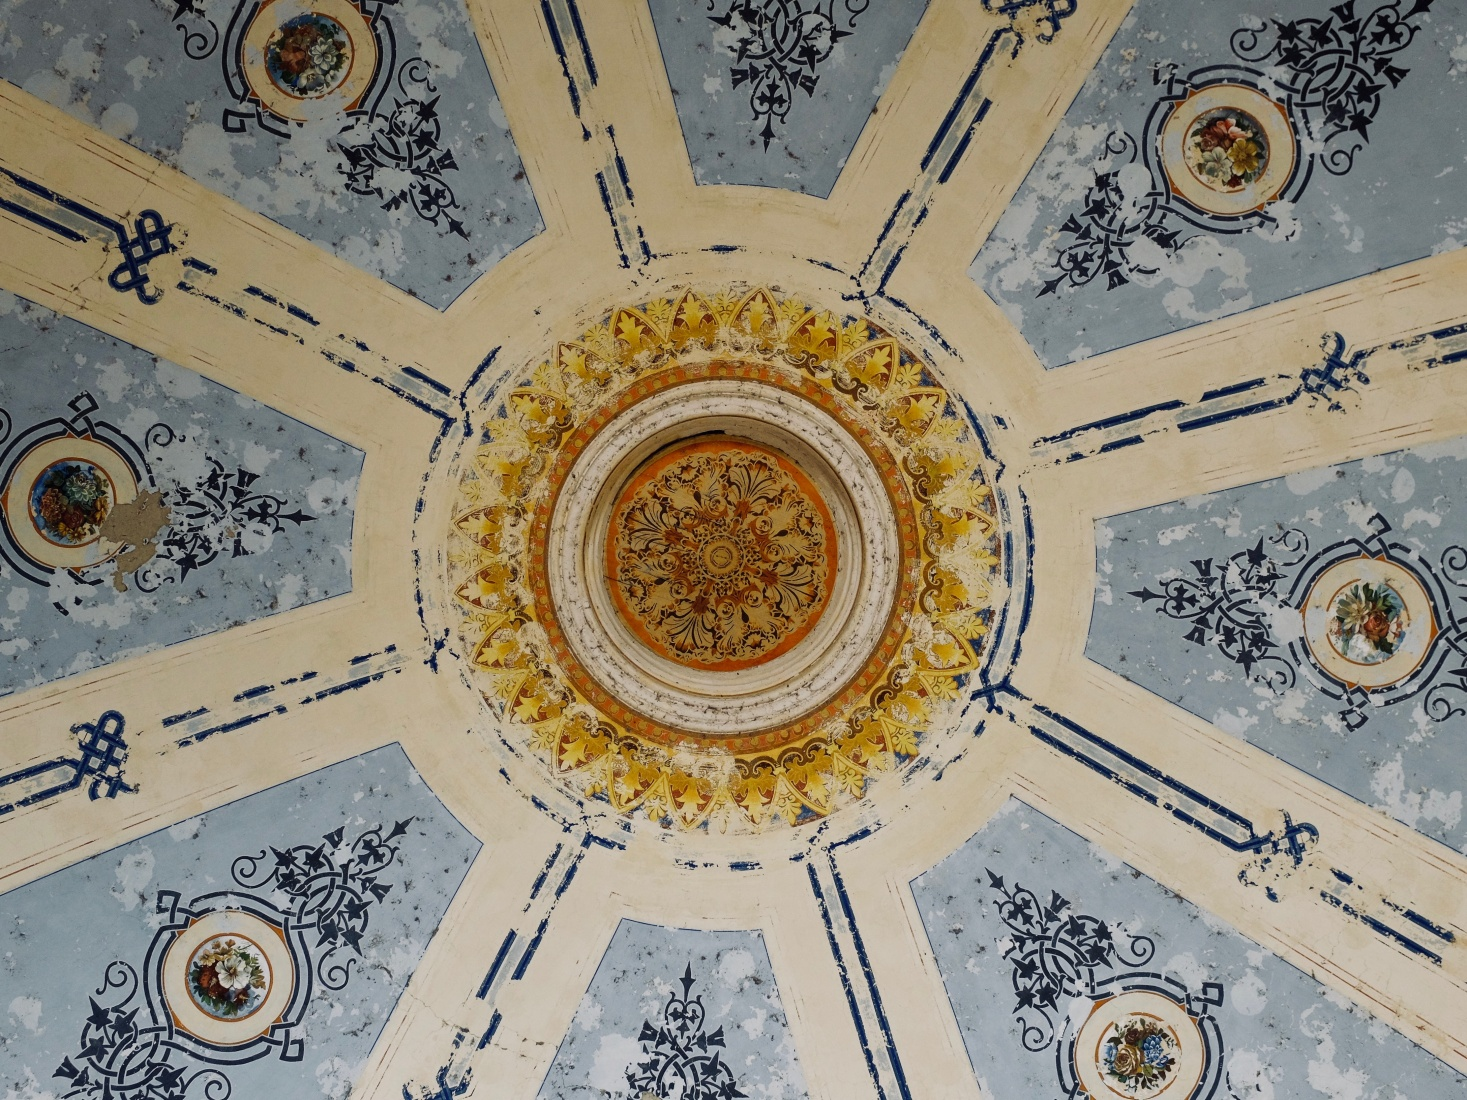 The ornate decorative paintings on the ceiling outside the historic casino building in Brașov, Romania.